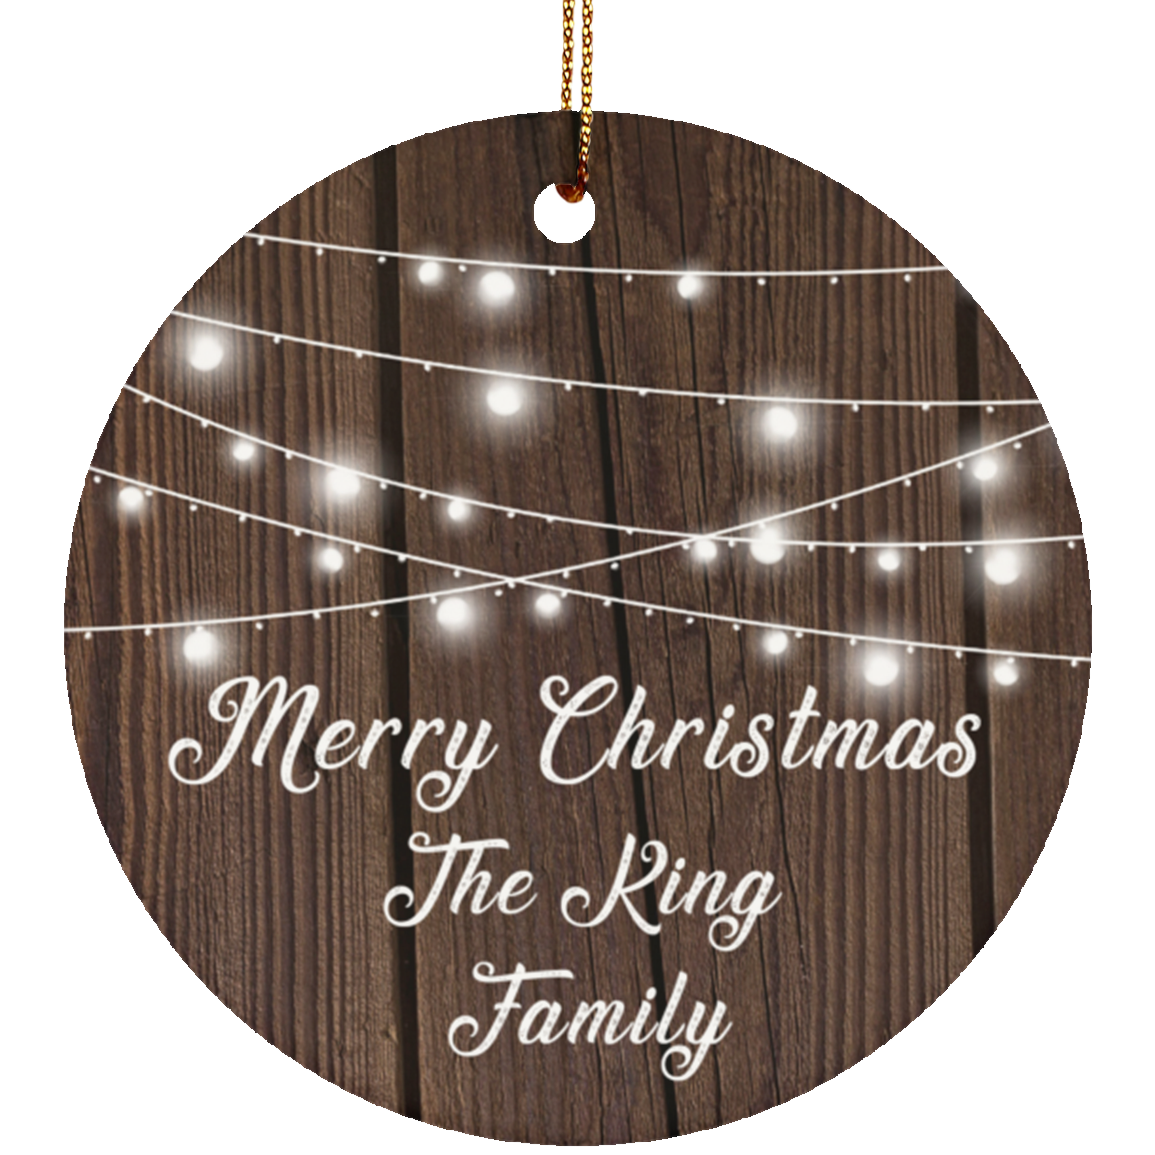 Merry Christmas The King Family - Circle Ornament